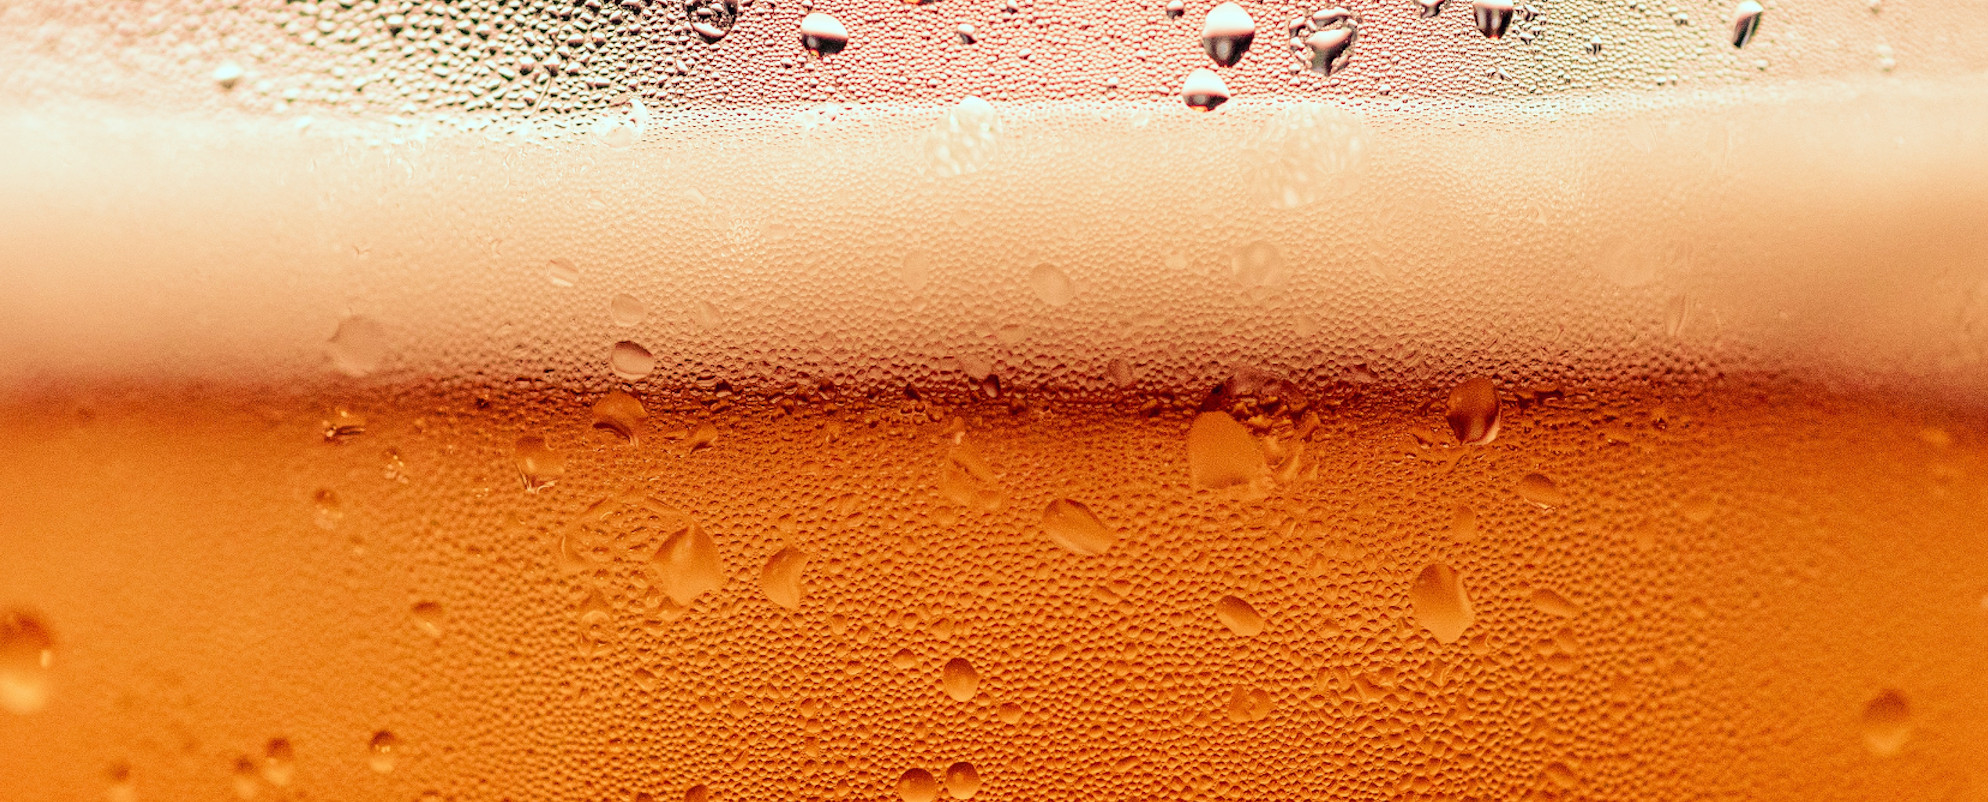 Beer bubbles deliciously in a cool glass